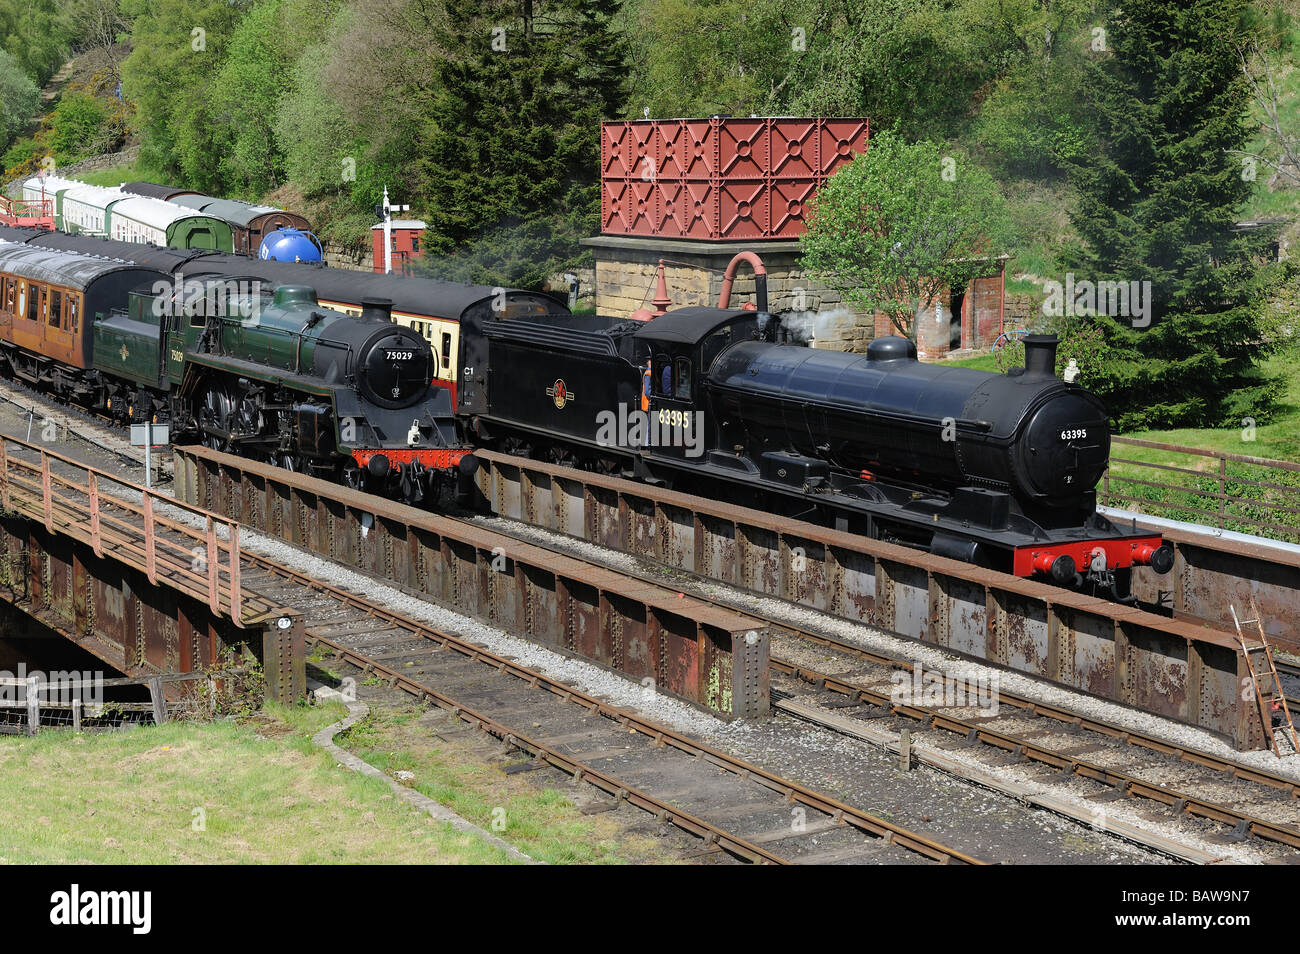 Preserved Steam locomotives at Goathland, North Yorkshire Moors Railway. 3rd May 2009 - Stock Image